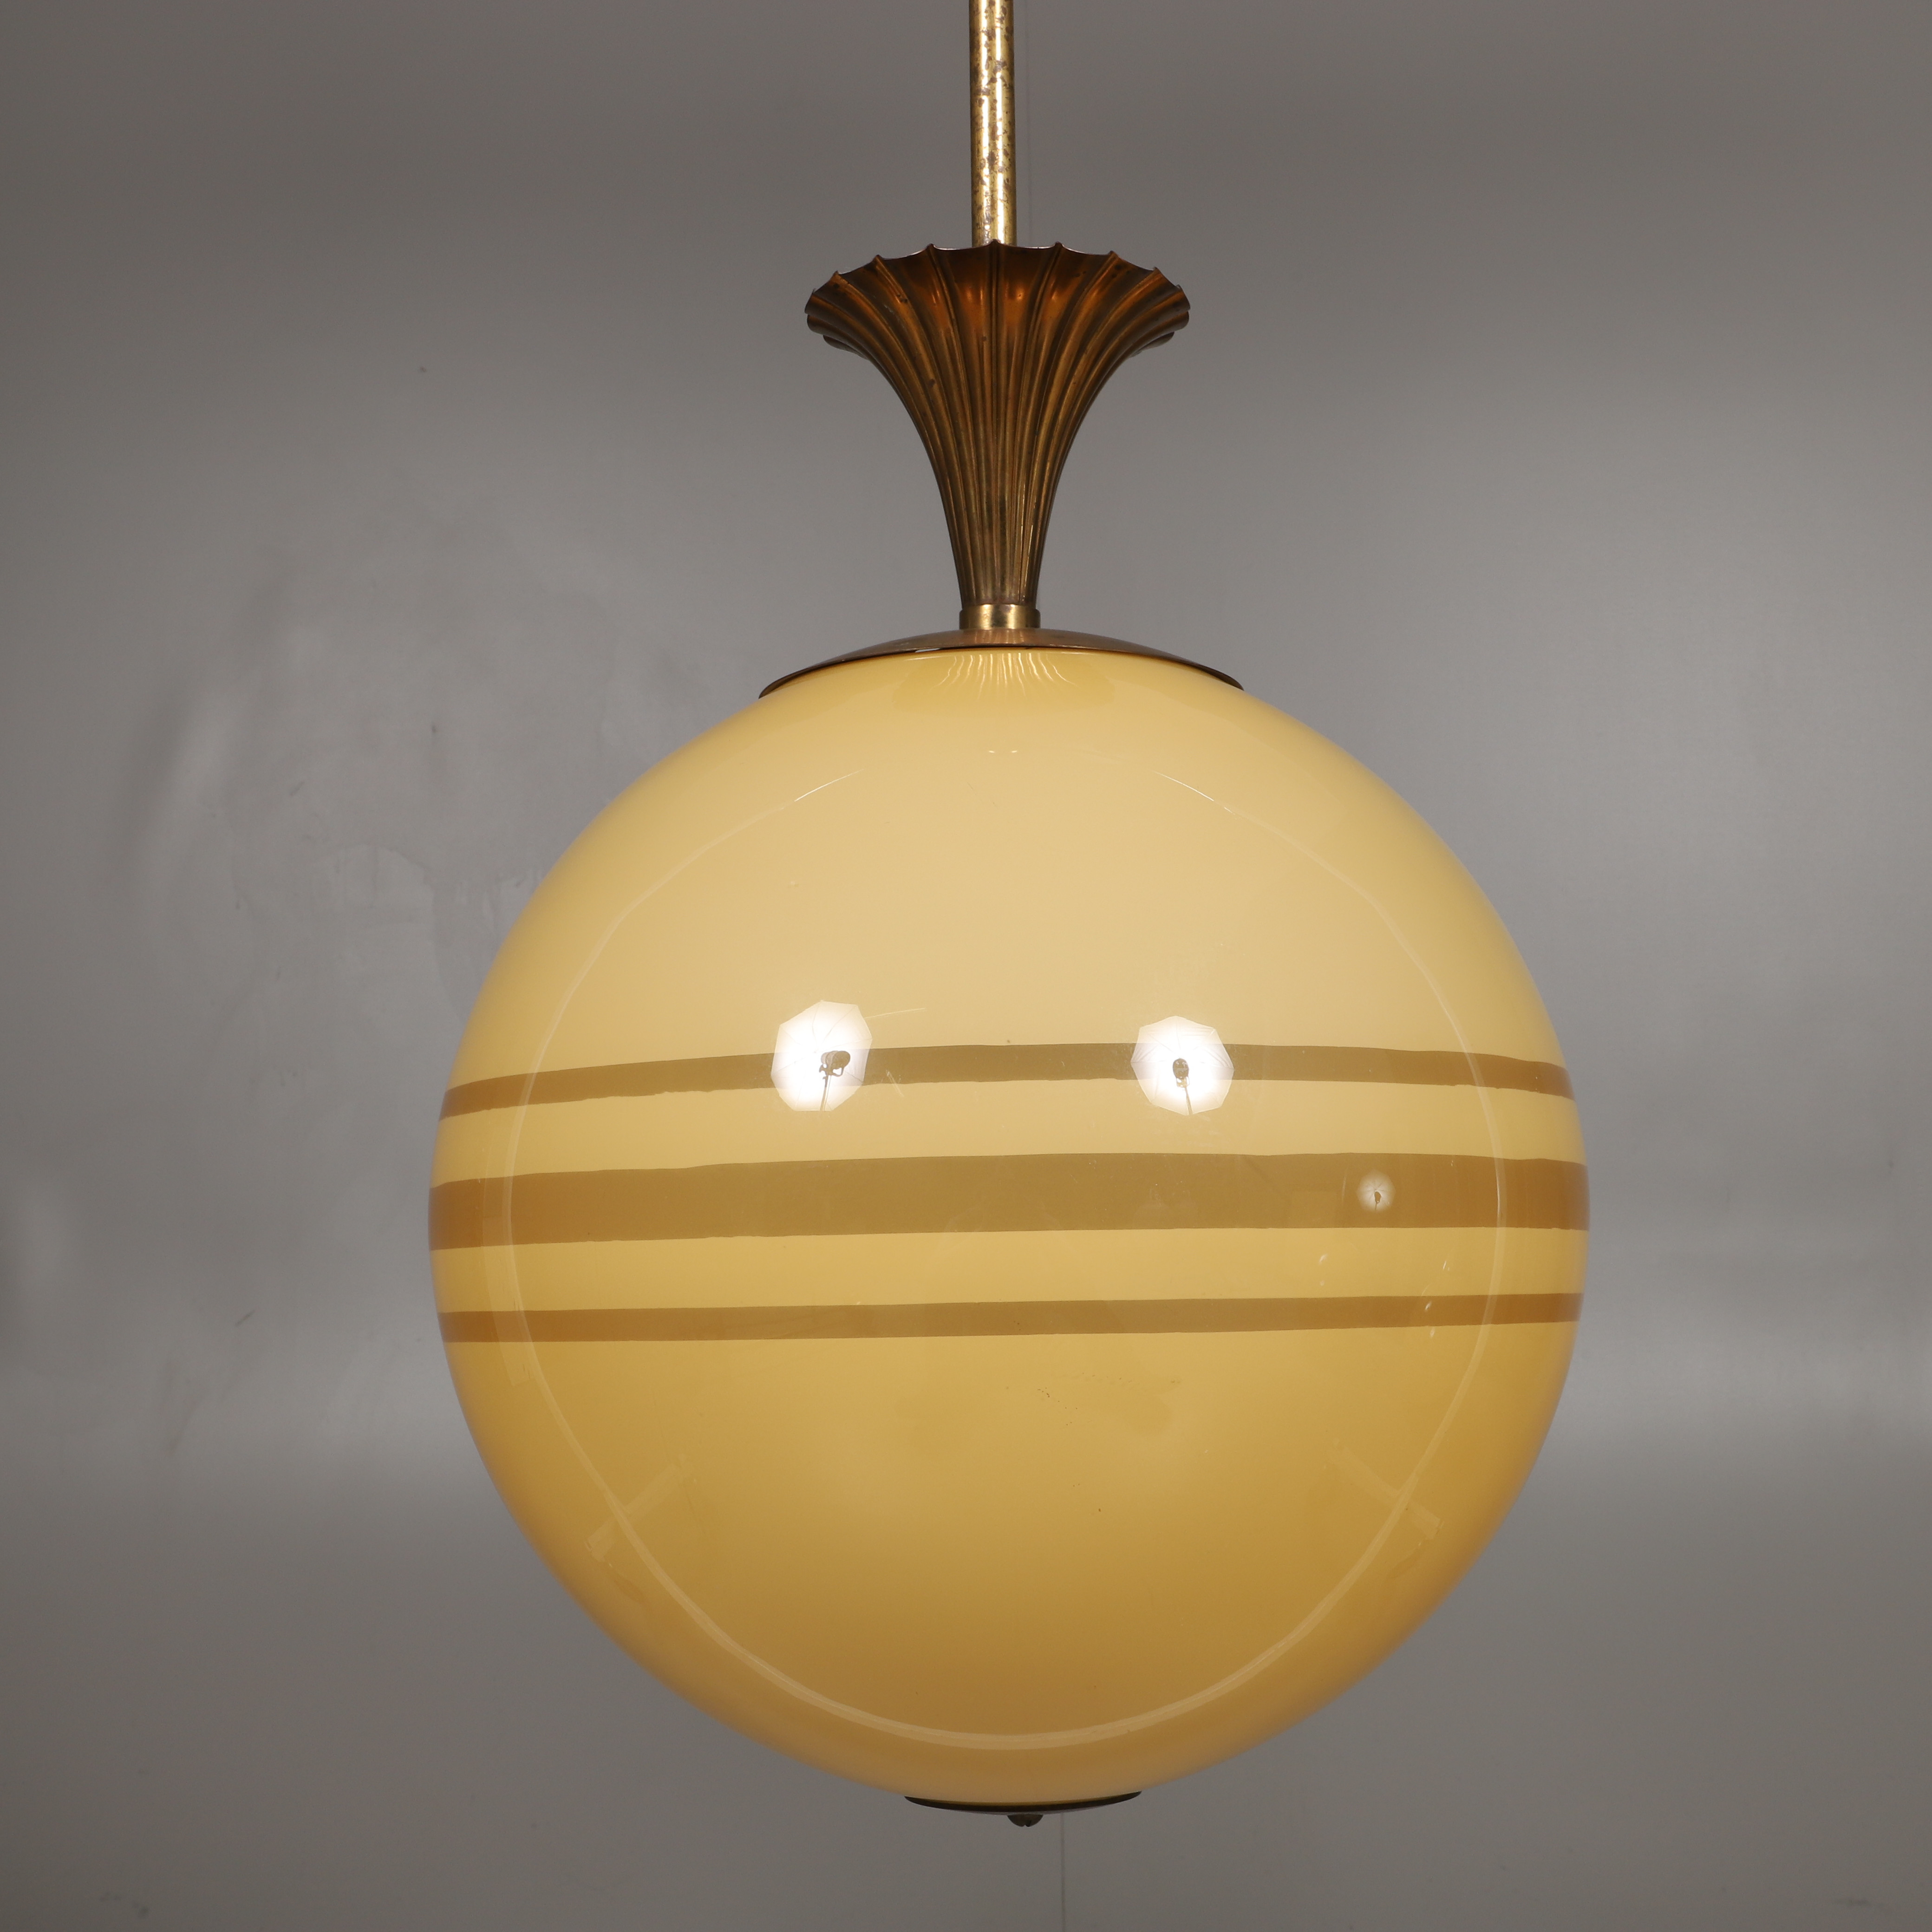 Ceiling Lamp Globe Model Stained Glass Brass The First Half Of The 20th Century Lighting Lamps Ceiling Lights Auctionet